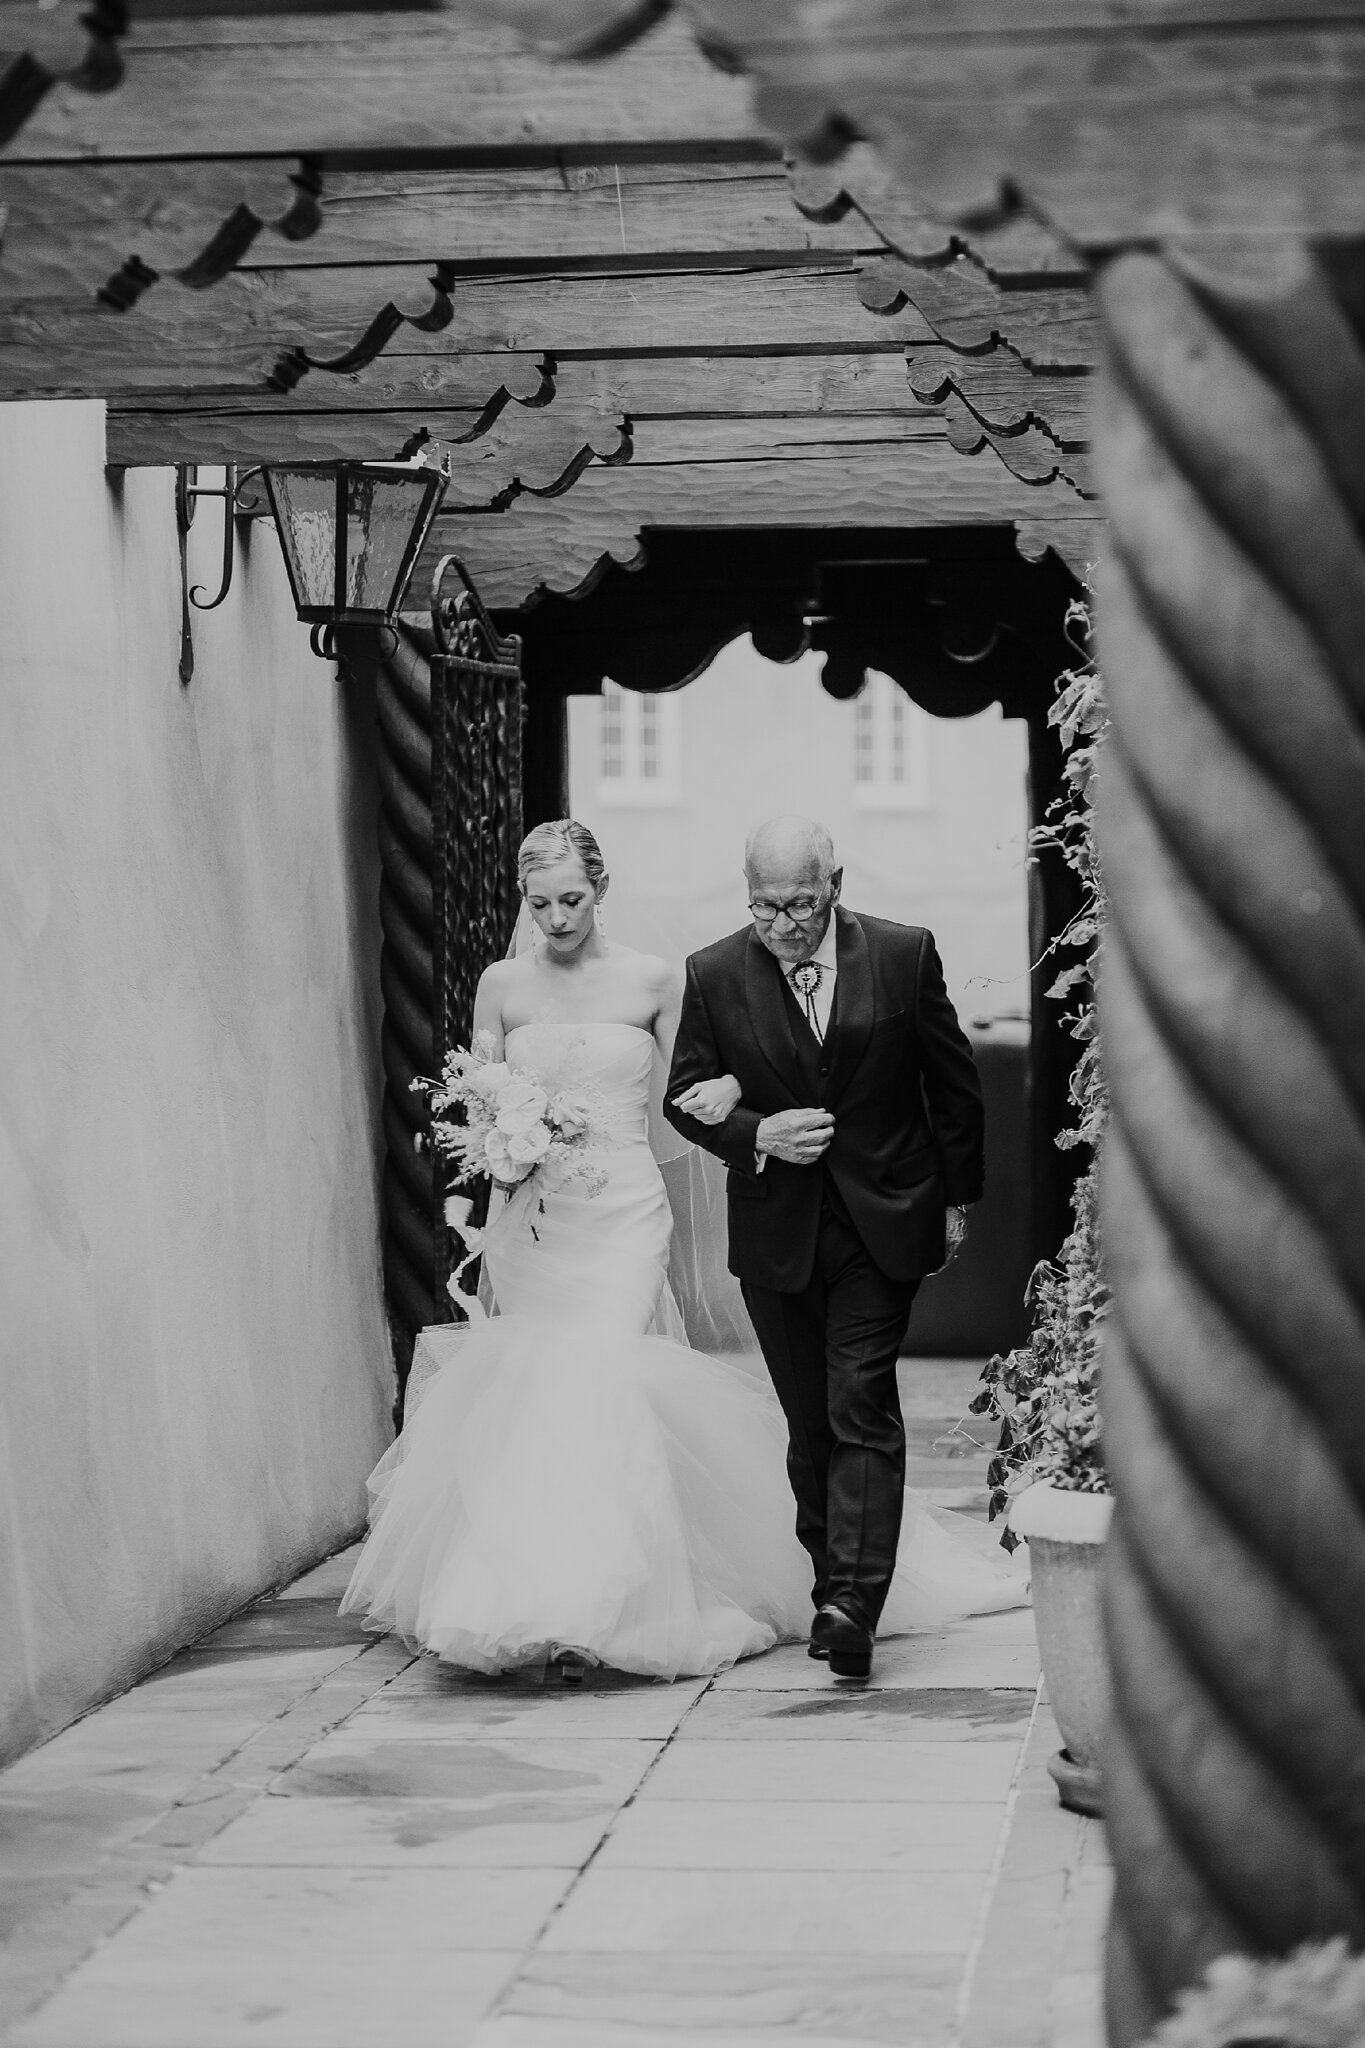 Alicia+lucia+photography+-+albuquerque+wedding+photographer+-+santa+fe+wedding+photography+-+new+mexico+wedding+photographer+-+new+mexico+wedding+-+la+fonda+wedding+-+la+fonda+on+the+plaza+-+santa+fe+wedding+-+brooklyn+bride_0045.jpg